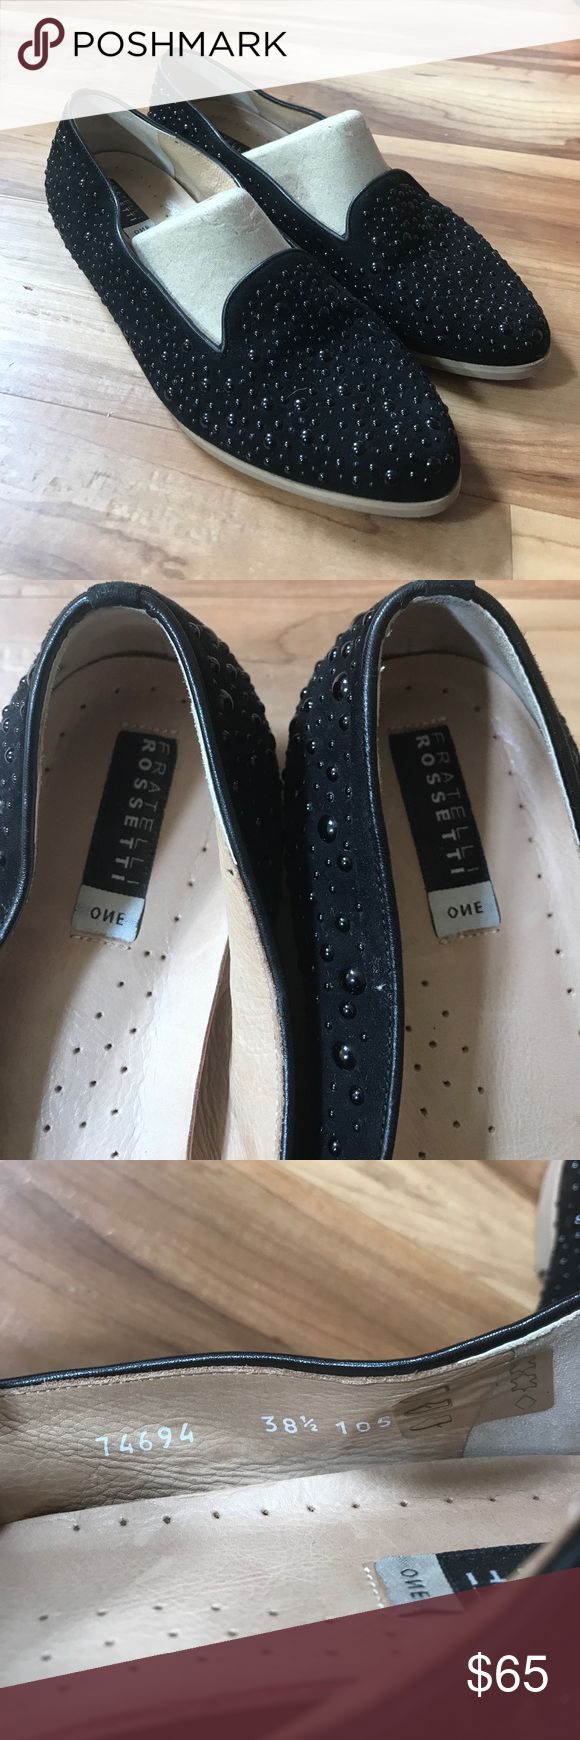 Fratelli Rossetti black studded flats 38.5 Gorgeous Fratelli Rossetti ONE studded flats in great condition . A minor bit of wear on the bottom which you you can see in the pics but overall in great shape and super comfortable!  Leather. Made in Italy Fratelli Rossetti Shoes Flats & Loafers